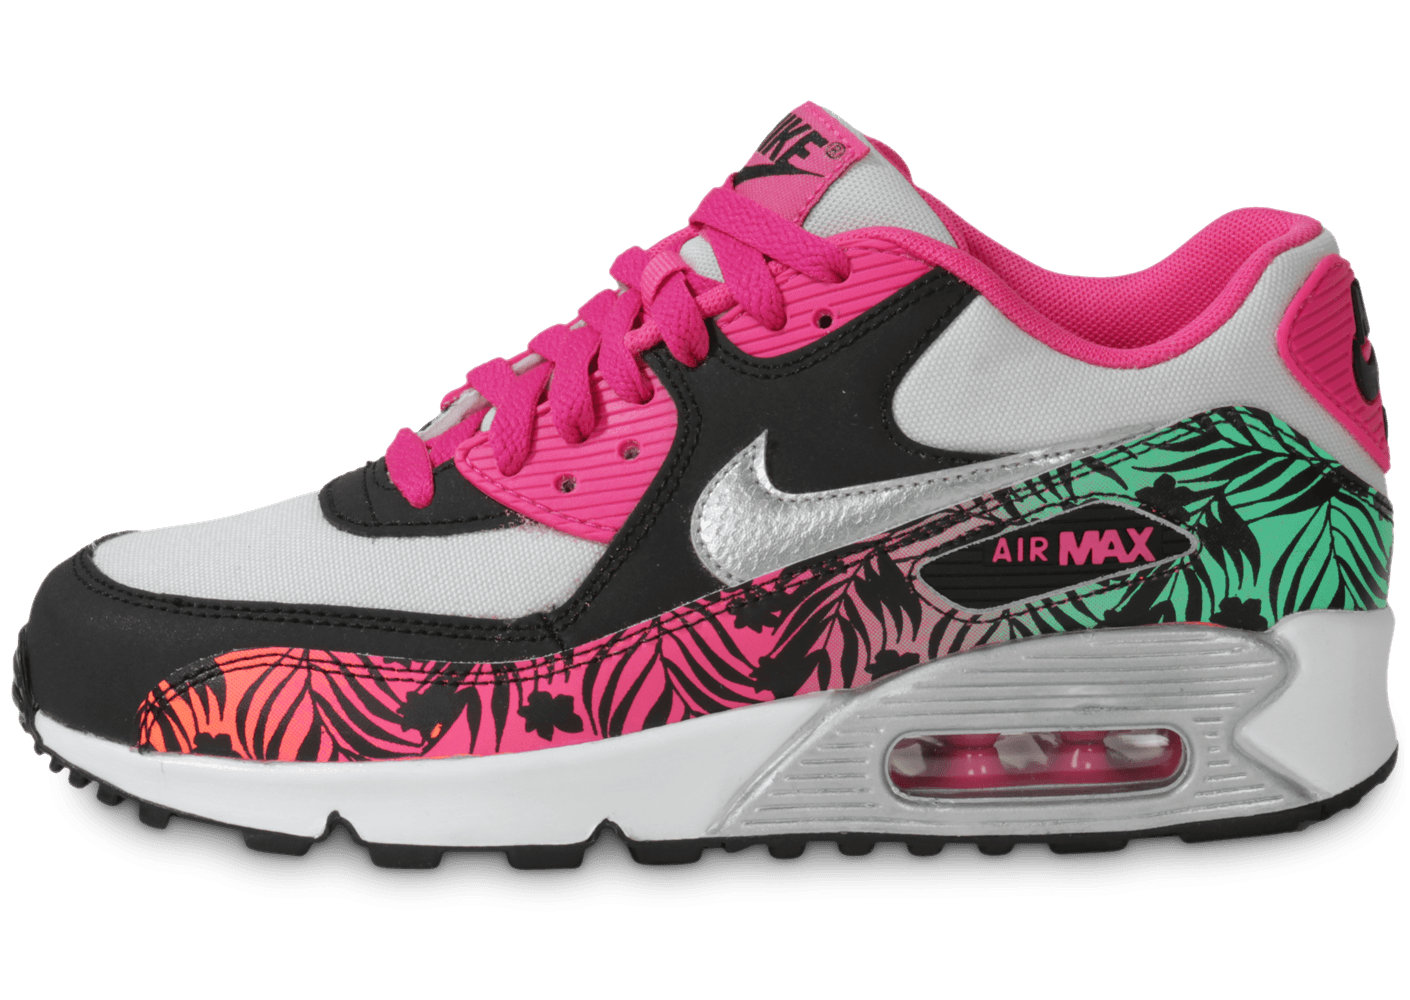 chaussures sport fille air max 90 junior de nike SEG0 LTGWyzkik